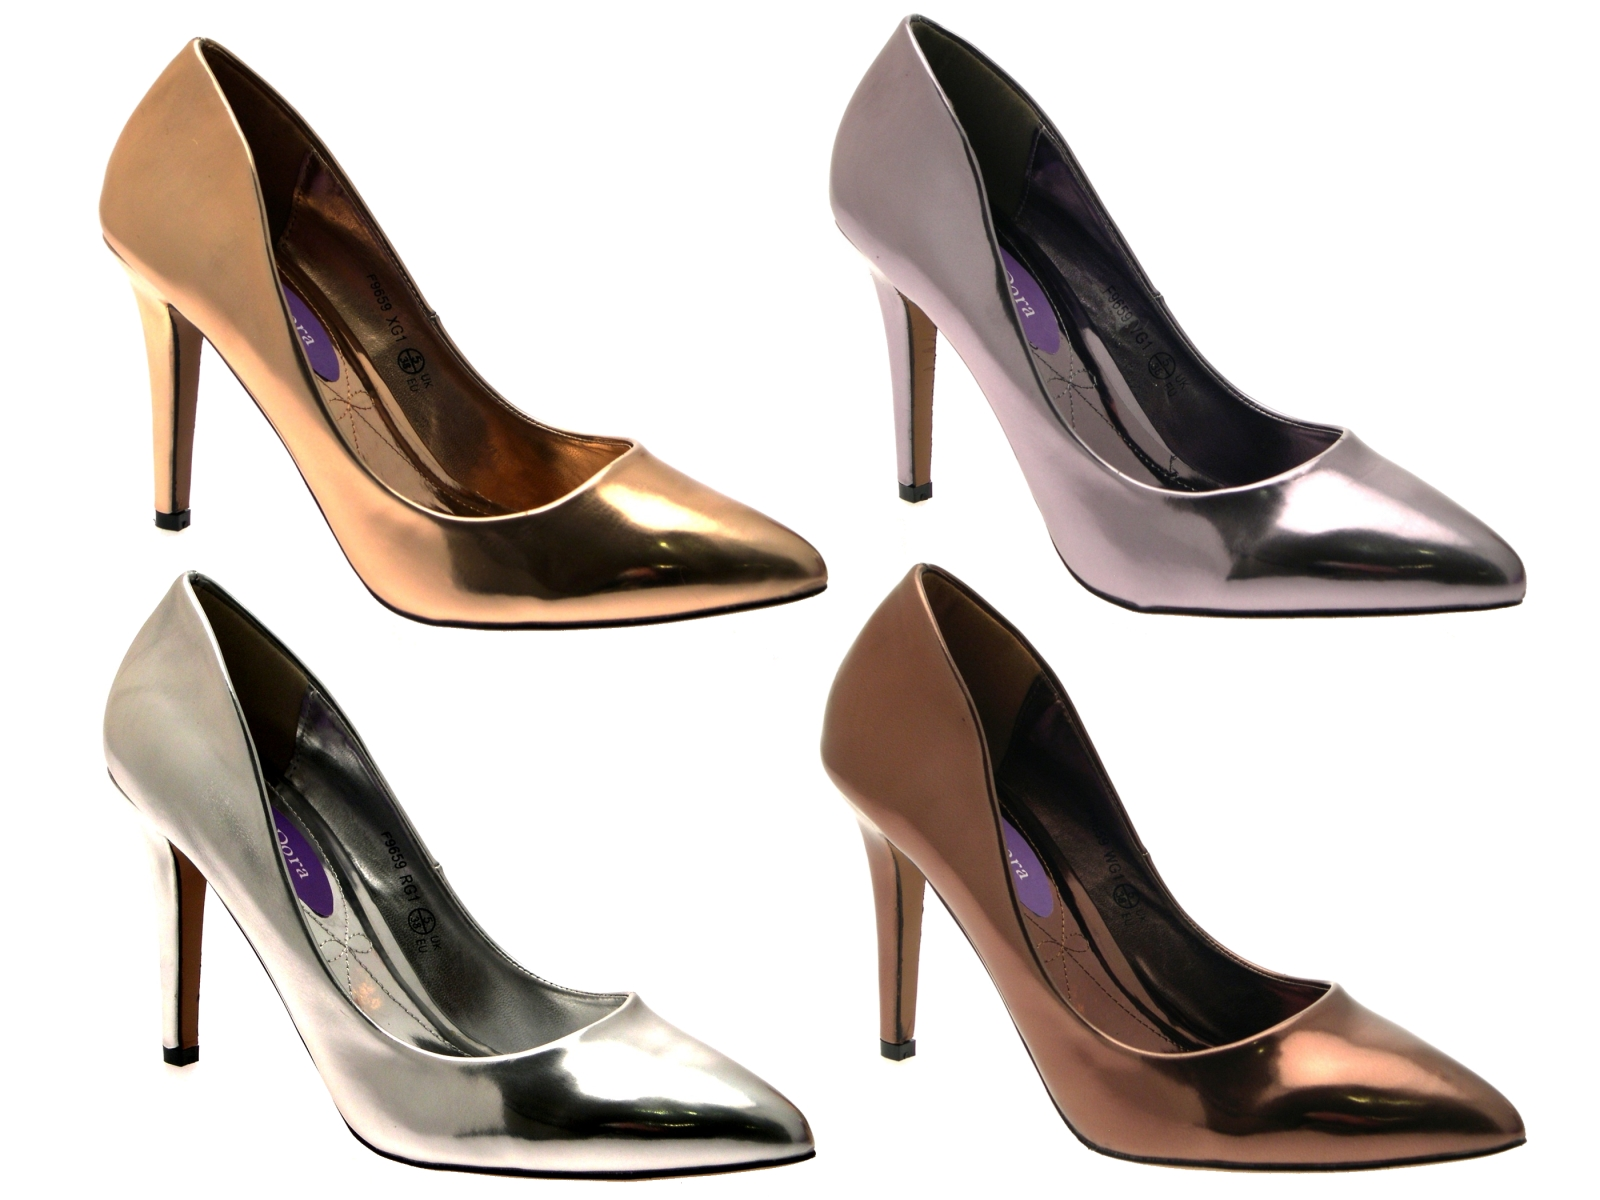 WOMENS METALLIC POINTED TOE COURT STILETTO HIGH HEELS